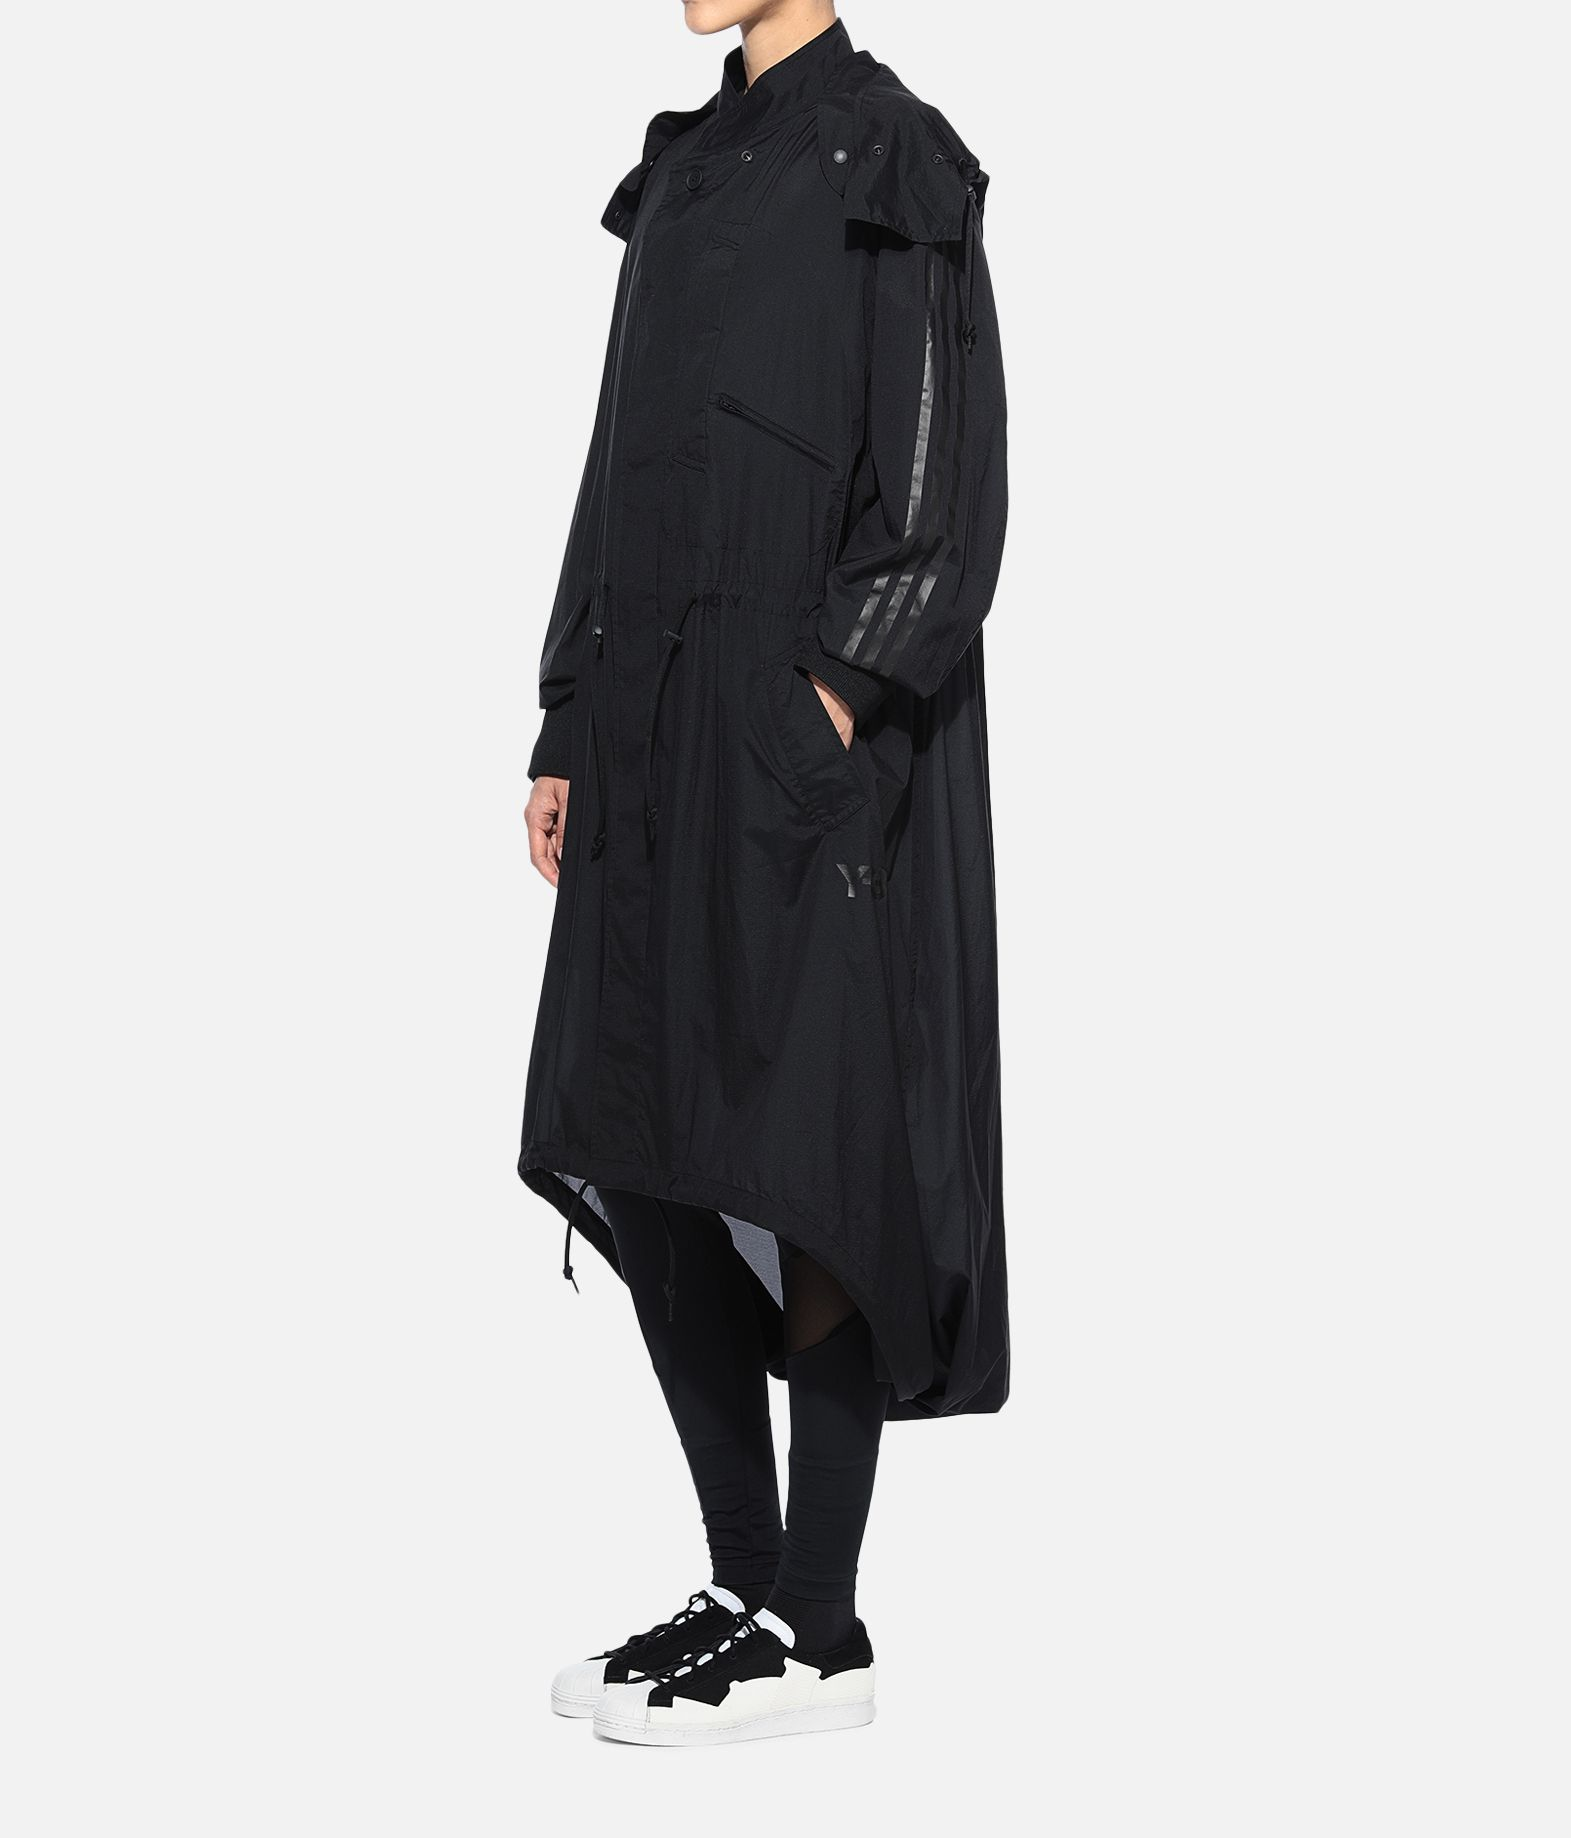 Y-3 Y-3 Adizero Fishtail Parka Nylon parka Woman e